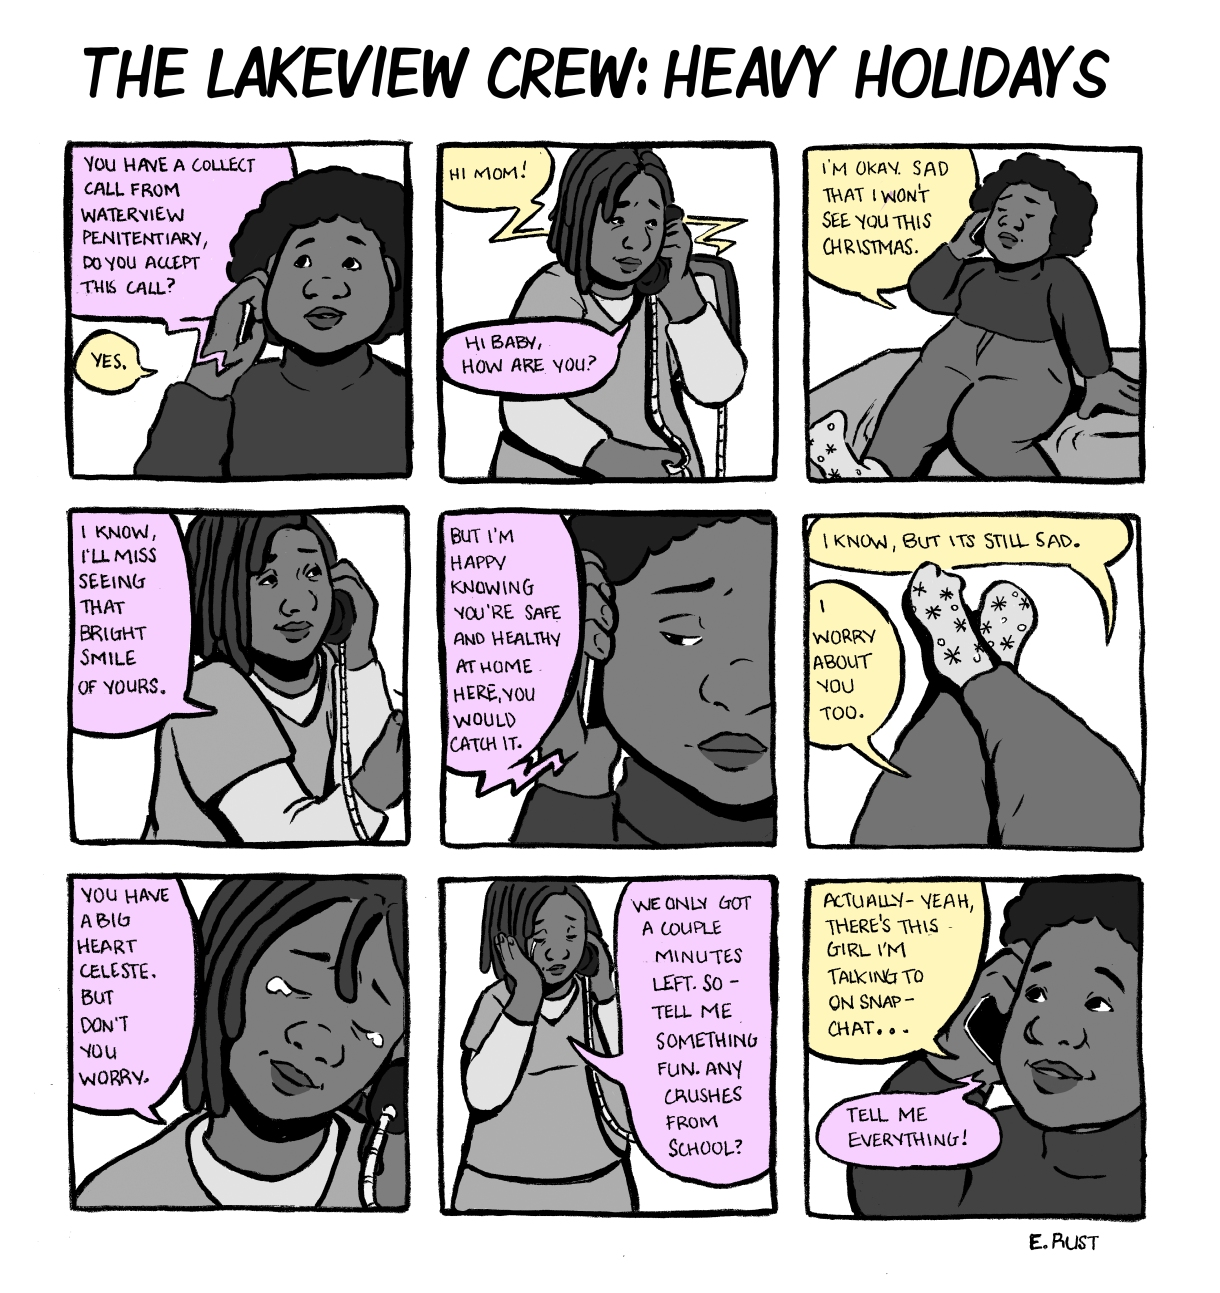 In a nine panel comic, Celeste accepts a call from her mother, who is inside Waterview Penitentiary. They exchange Christmas well wishes, even though they miss seeing each other. Emma's mom is relieved, at the least, that with Emma is safe from Covid at home. But Emma worries that her mother might contract the virus inside. Emma's mom cries a little, but tells Celeste not to worry. They only have a few minutes left, so Celeste's mom encourages her to change the subject — tell her about a new crush at school. Tell her everything!